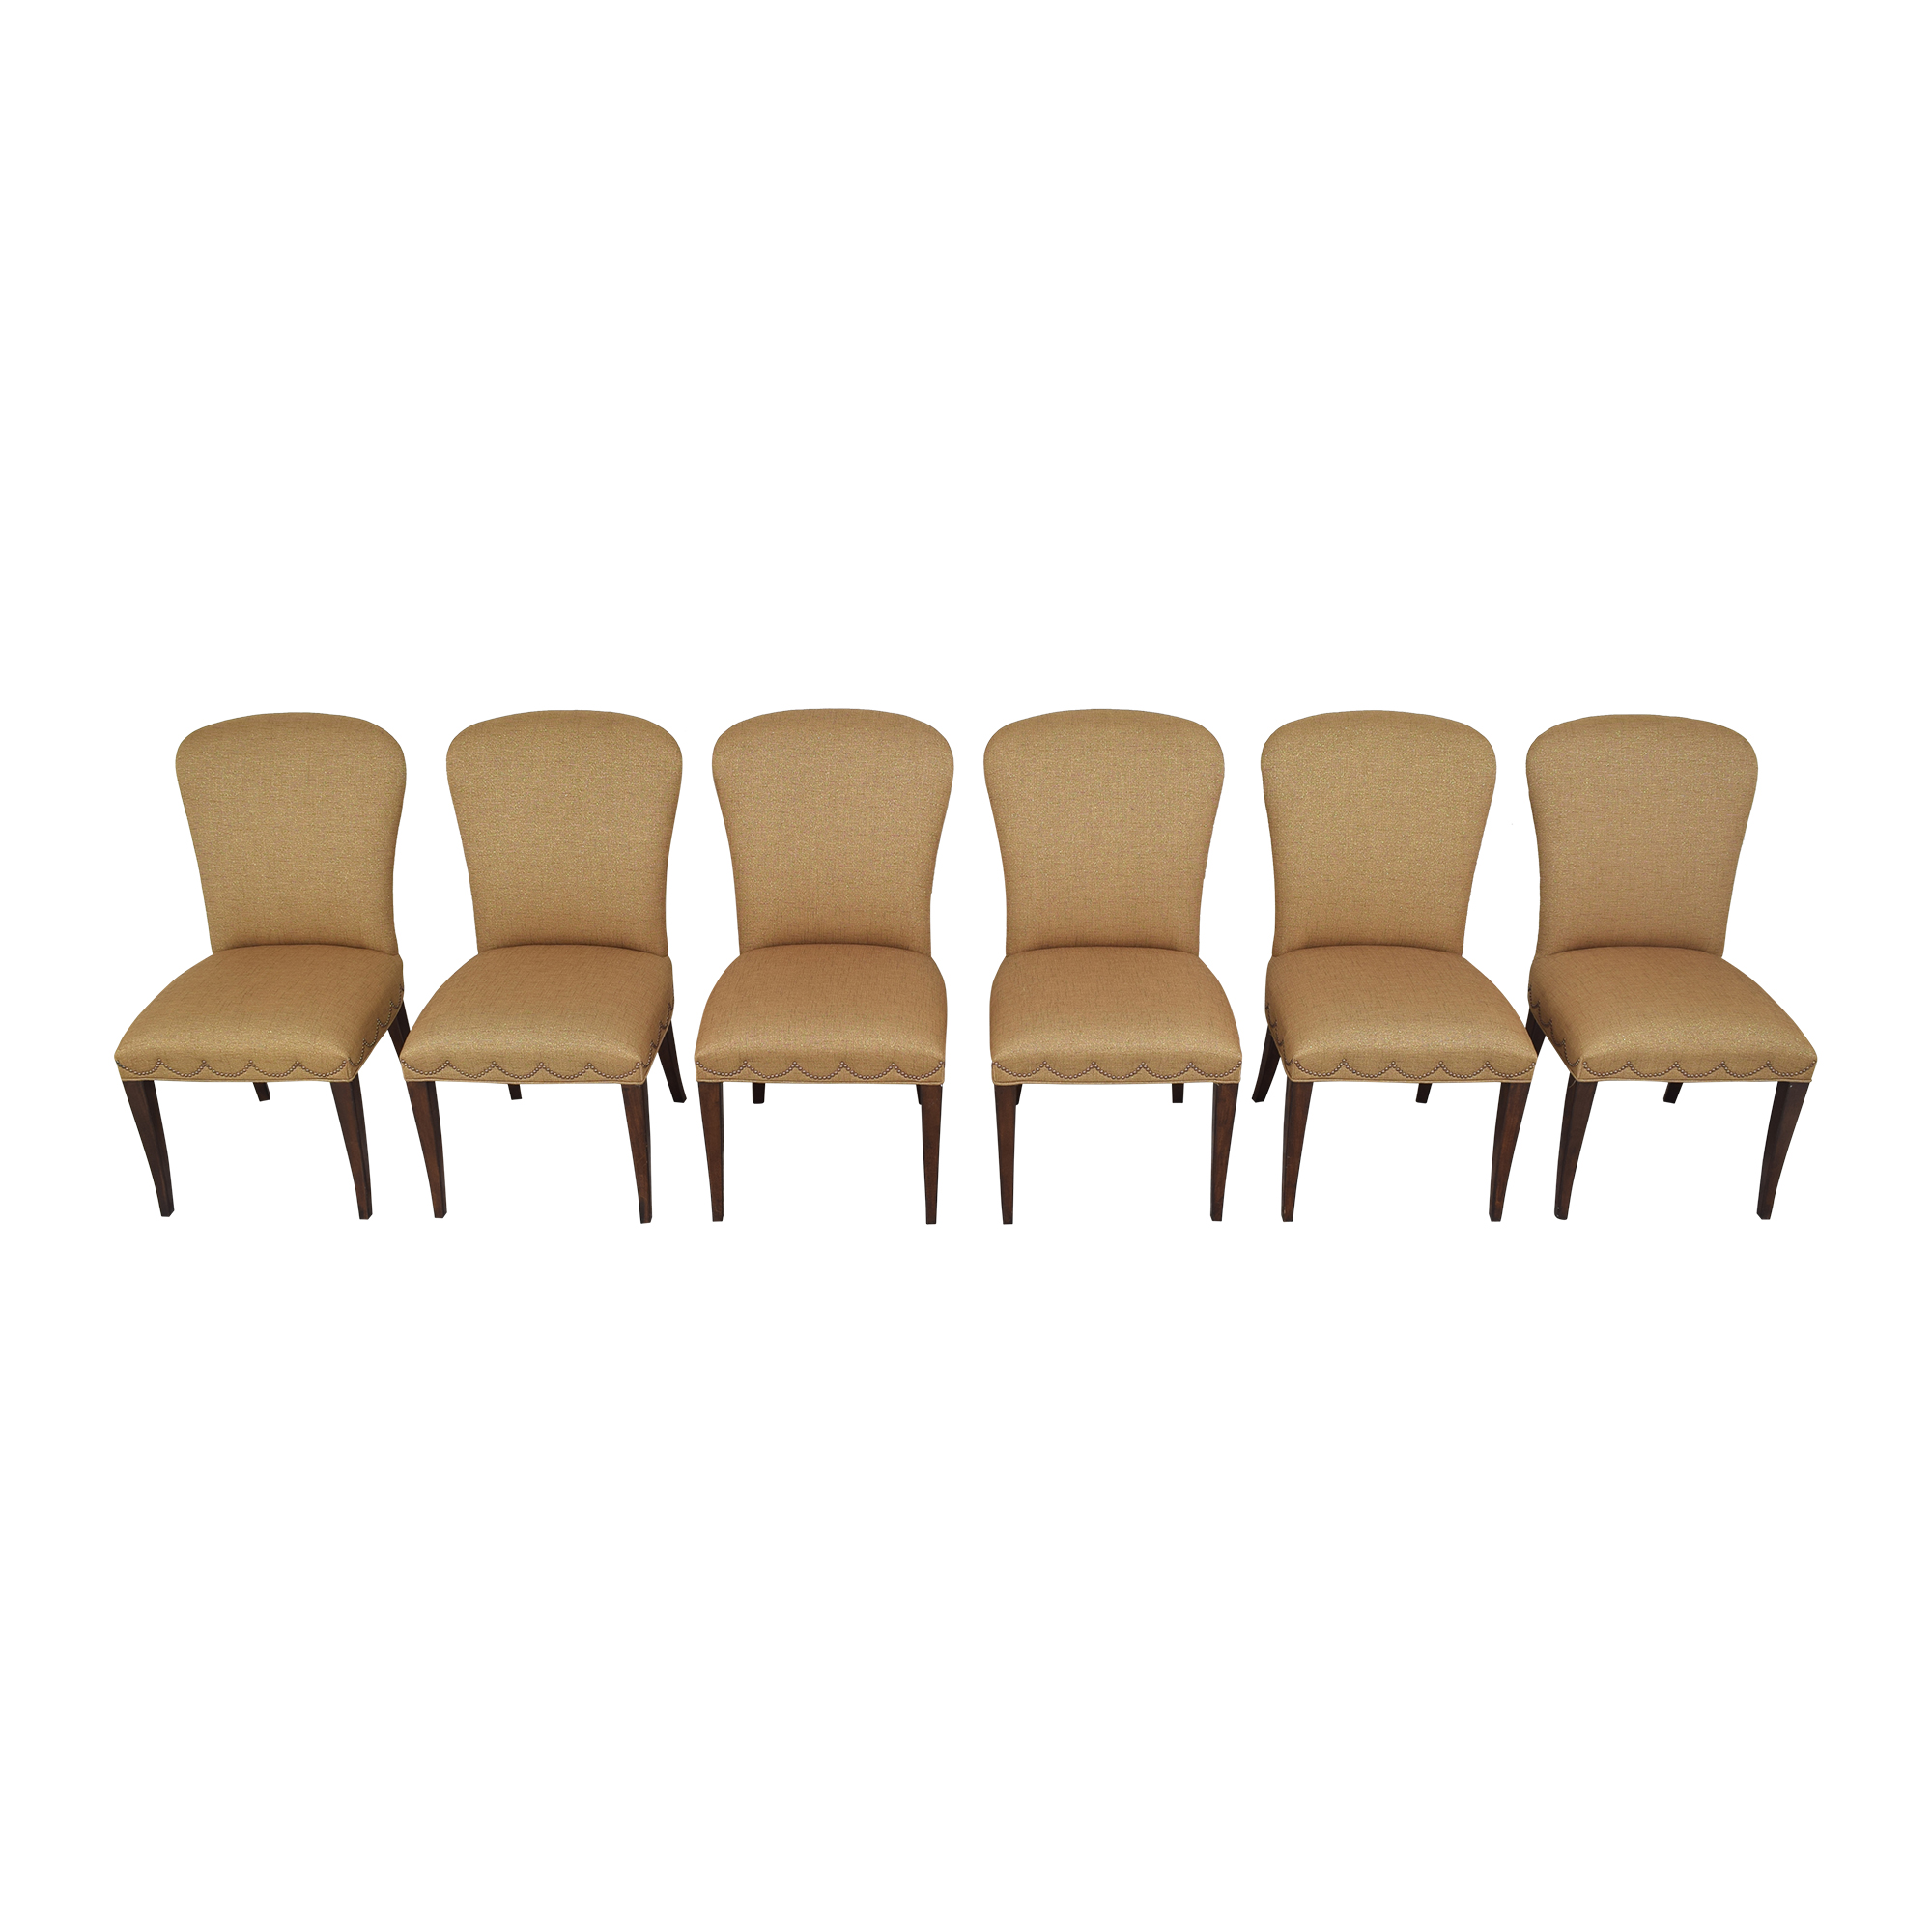 Furniture Brands International Furniture Brands International Scalloped Nailhead Dining Chairs for sale